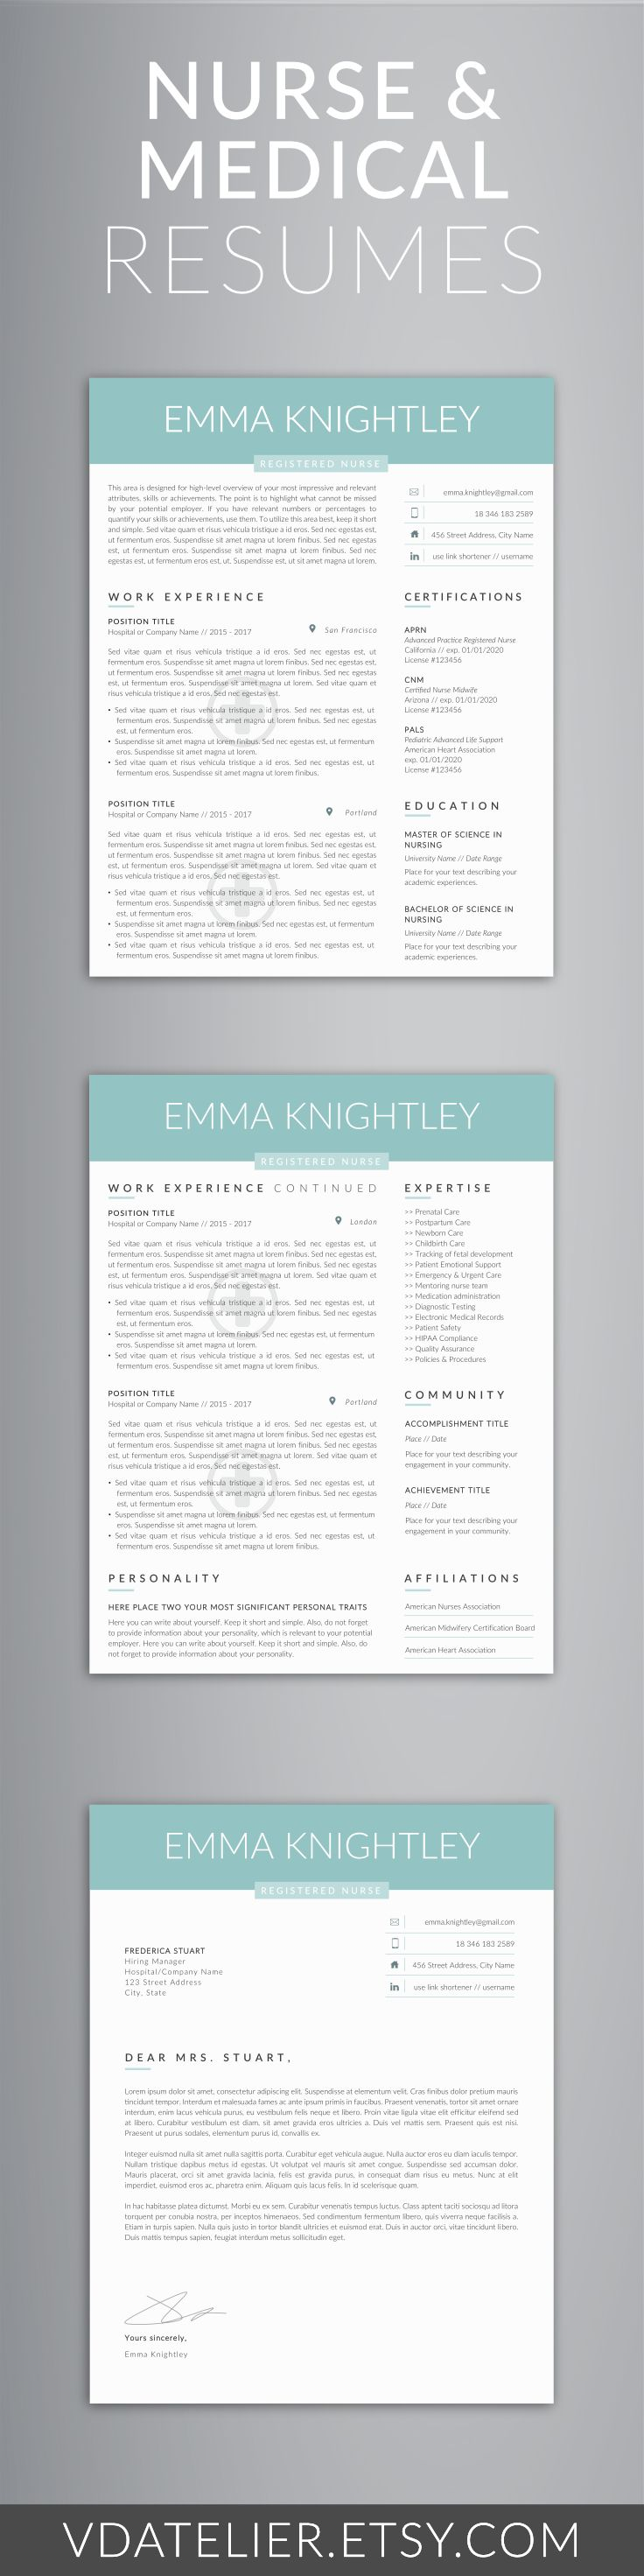 Doctor Resume Template for Word, Nurse Resume Template | Nurse CV Template | RN Resume, Medical Resume | US Letter & A4 | 1,2,3 Page Resume